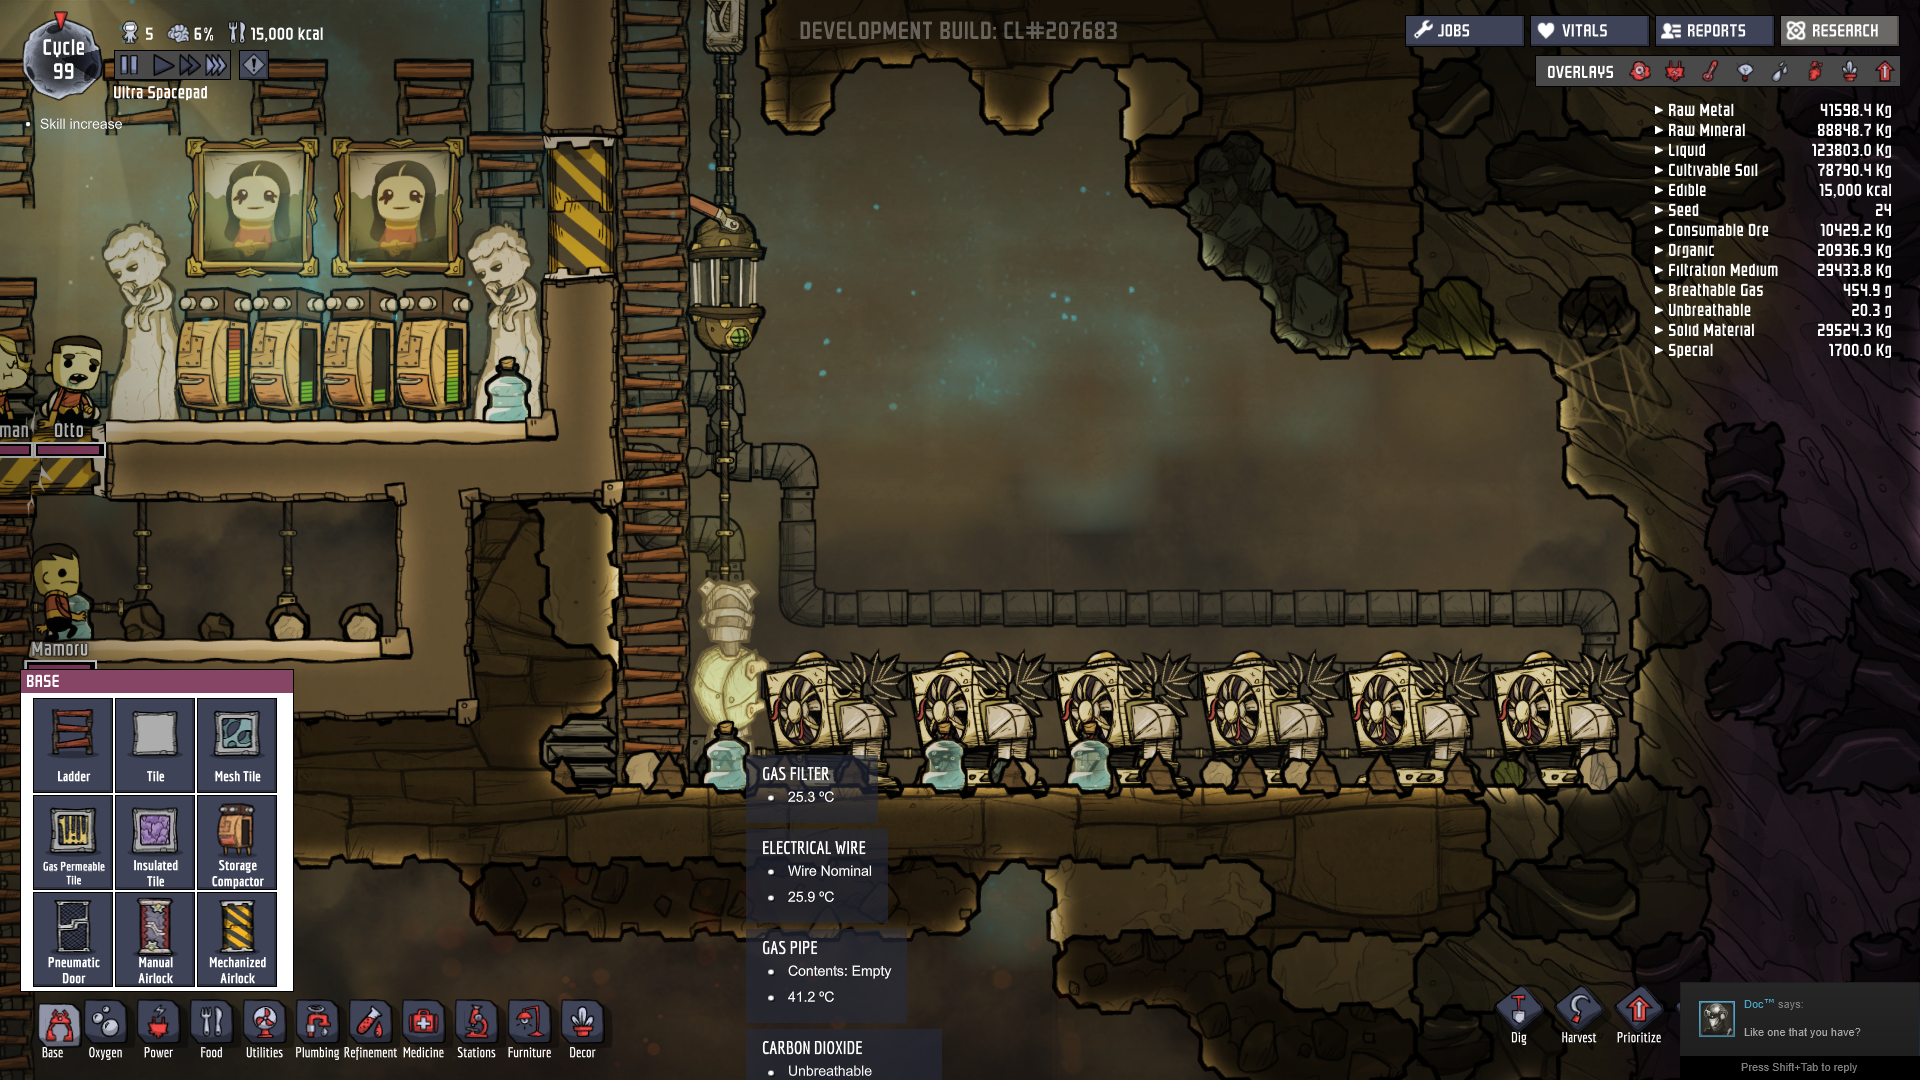 Super Cooled Gasses - [Oxygen Not Included] - General